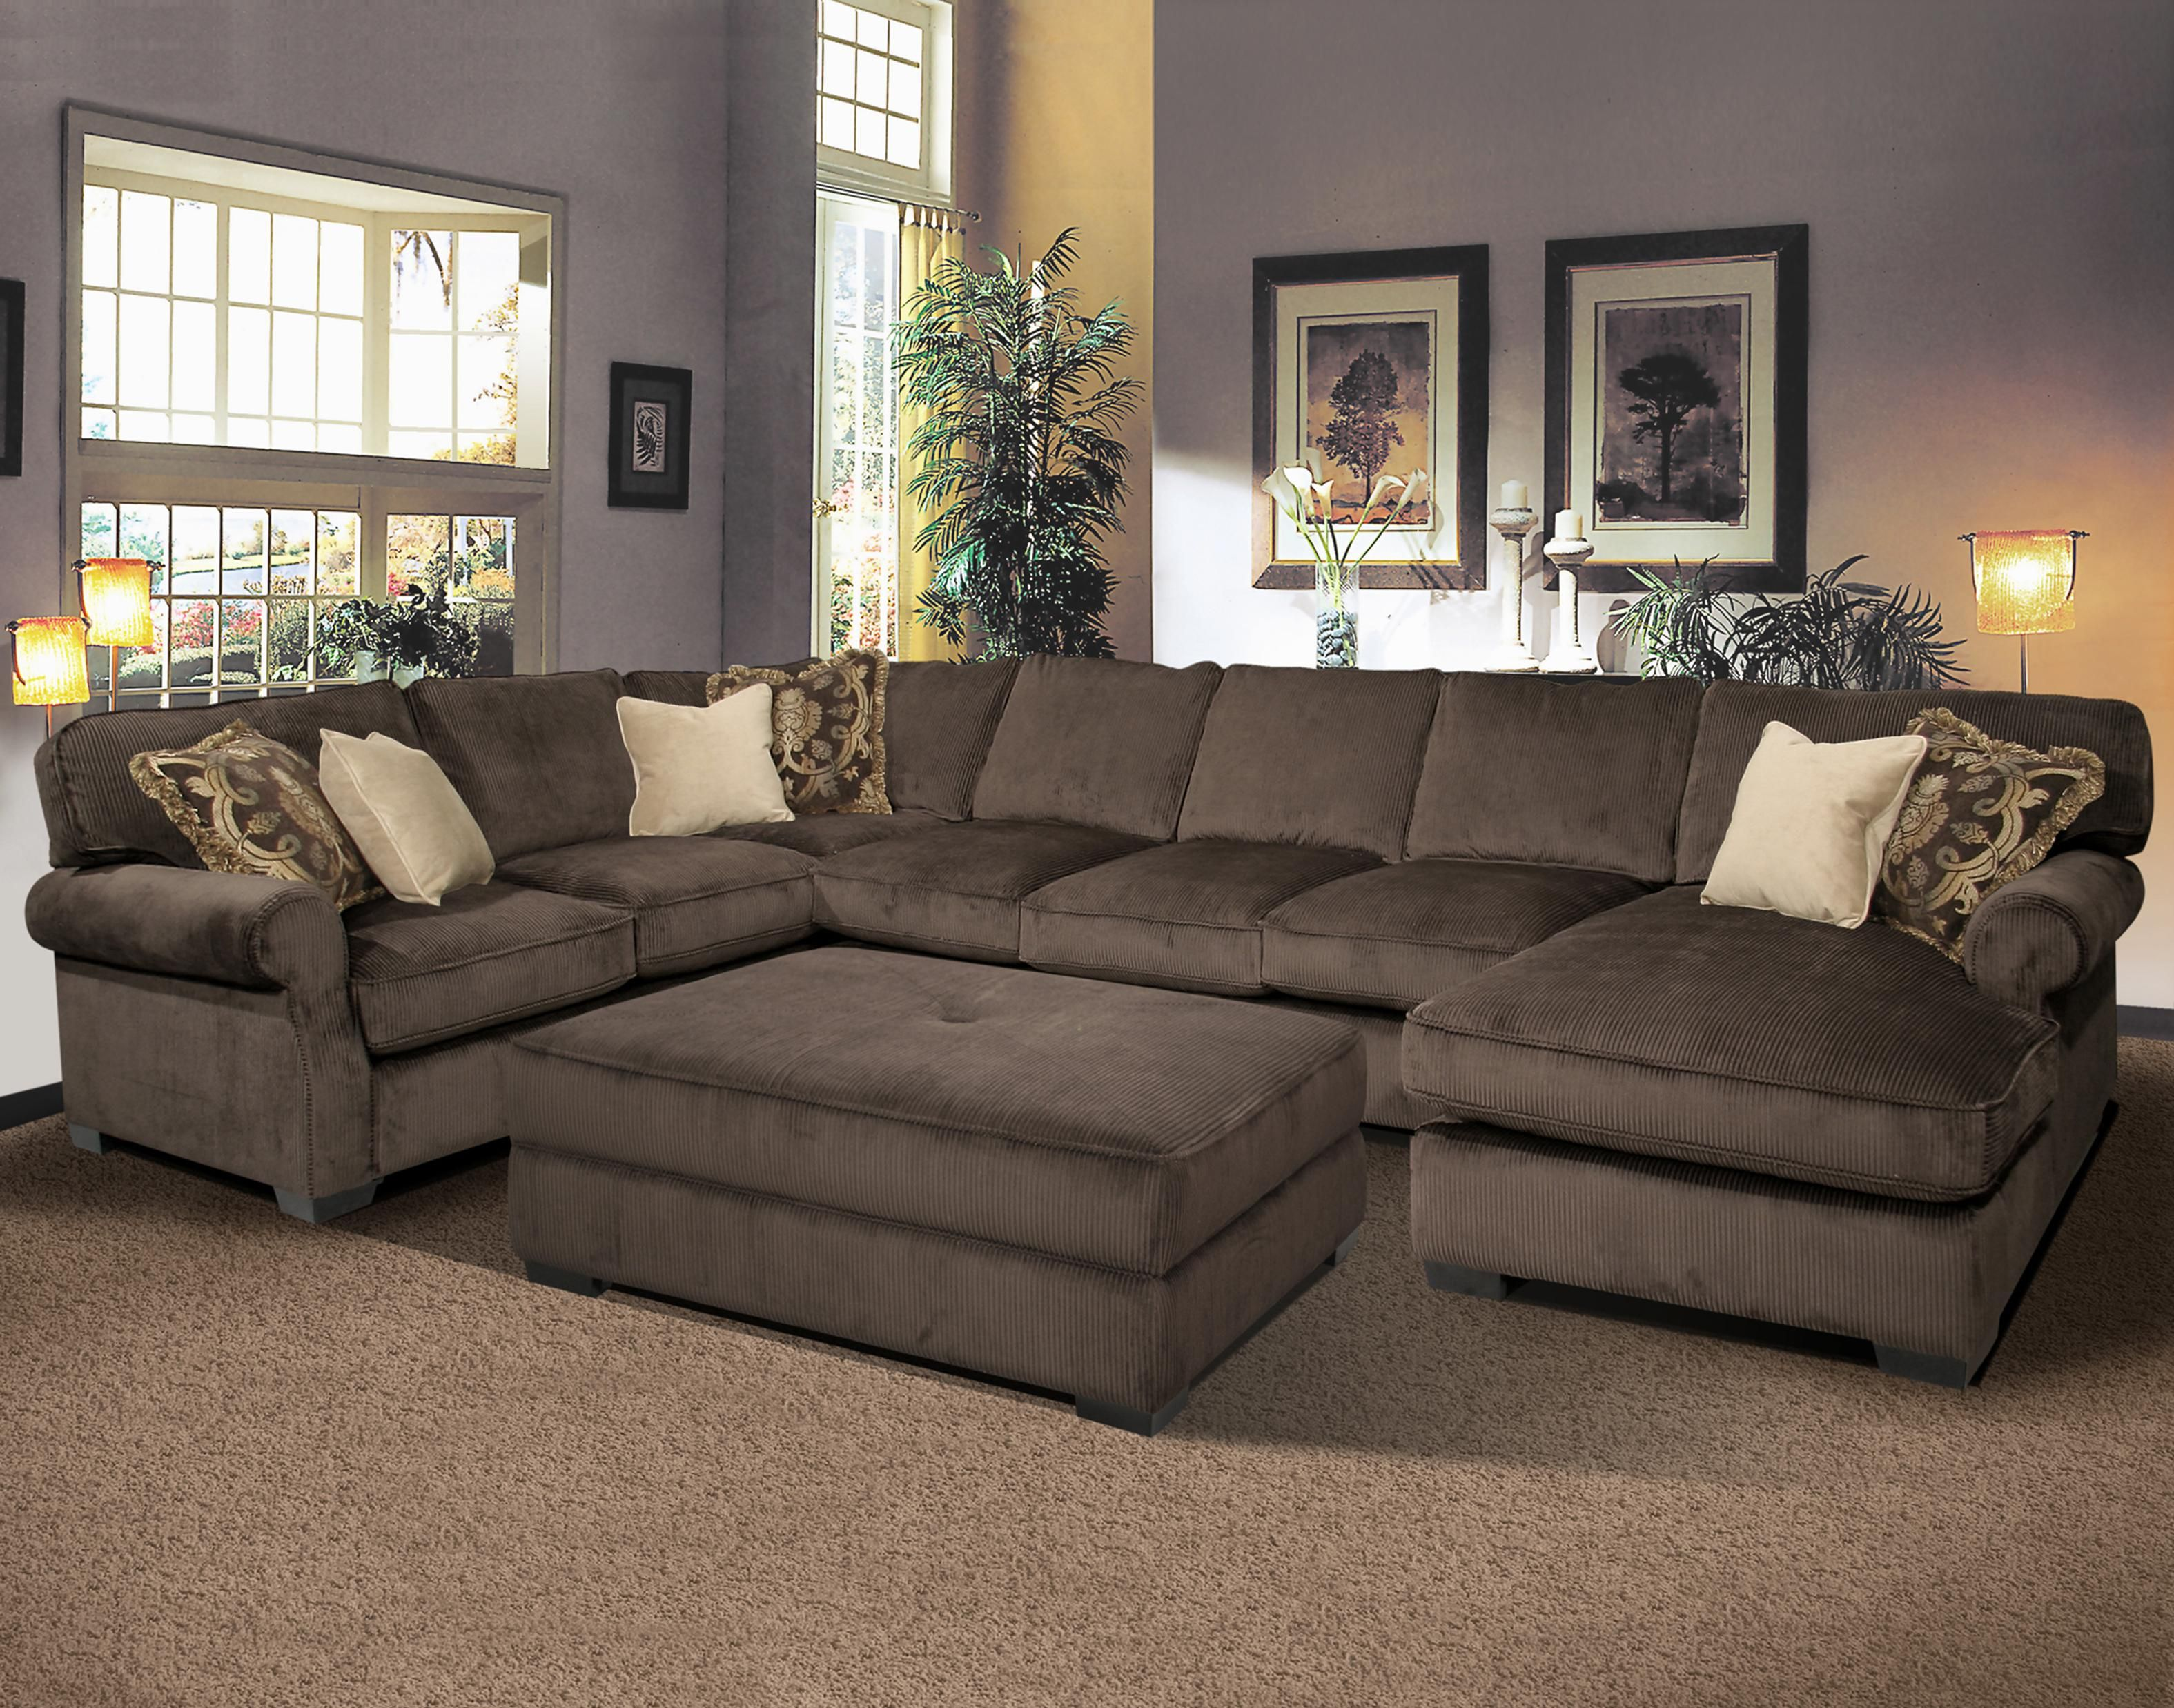 pieces large that your sectional into family harmony build sofas fit own perfectly home will